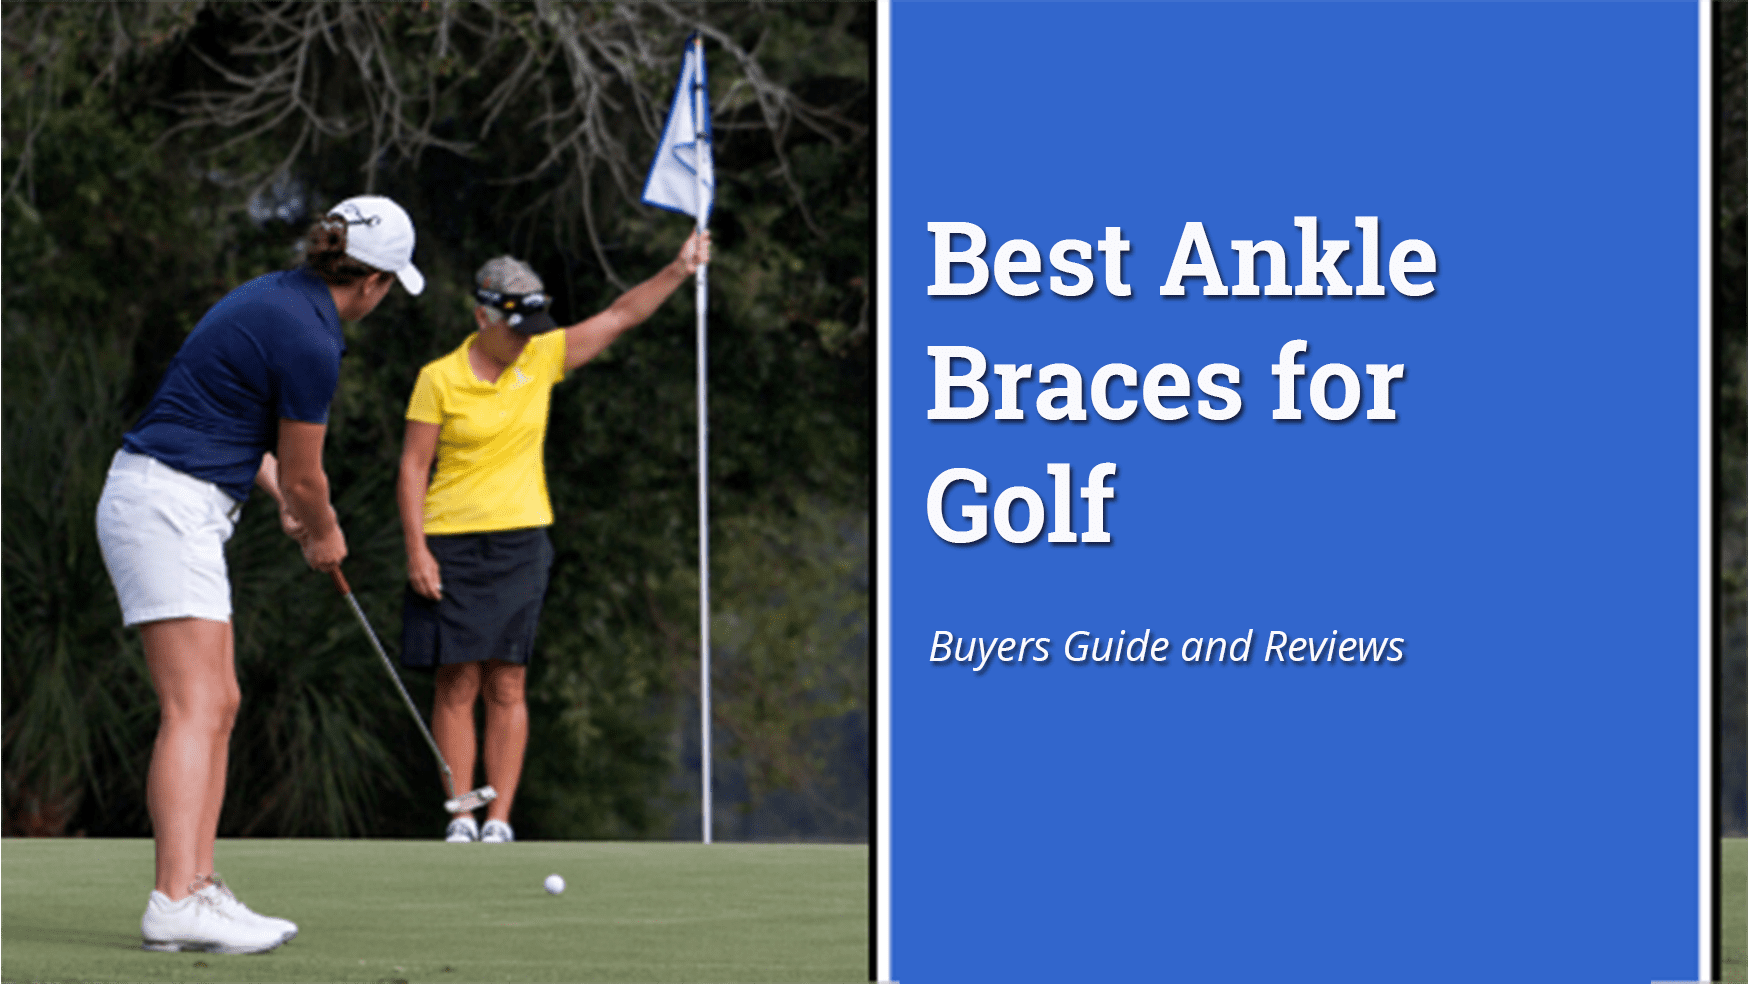 Best Ankle Braces for Golf